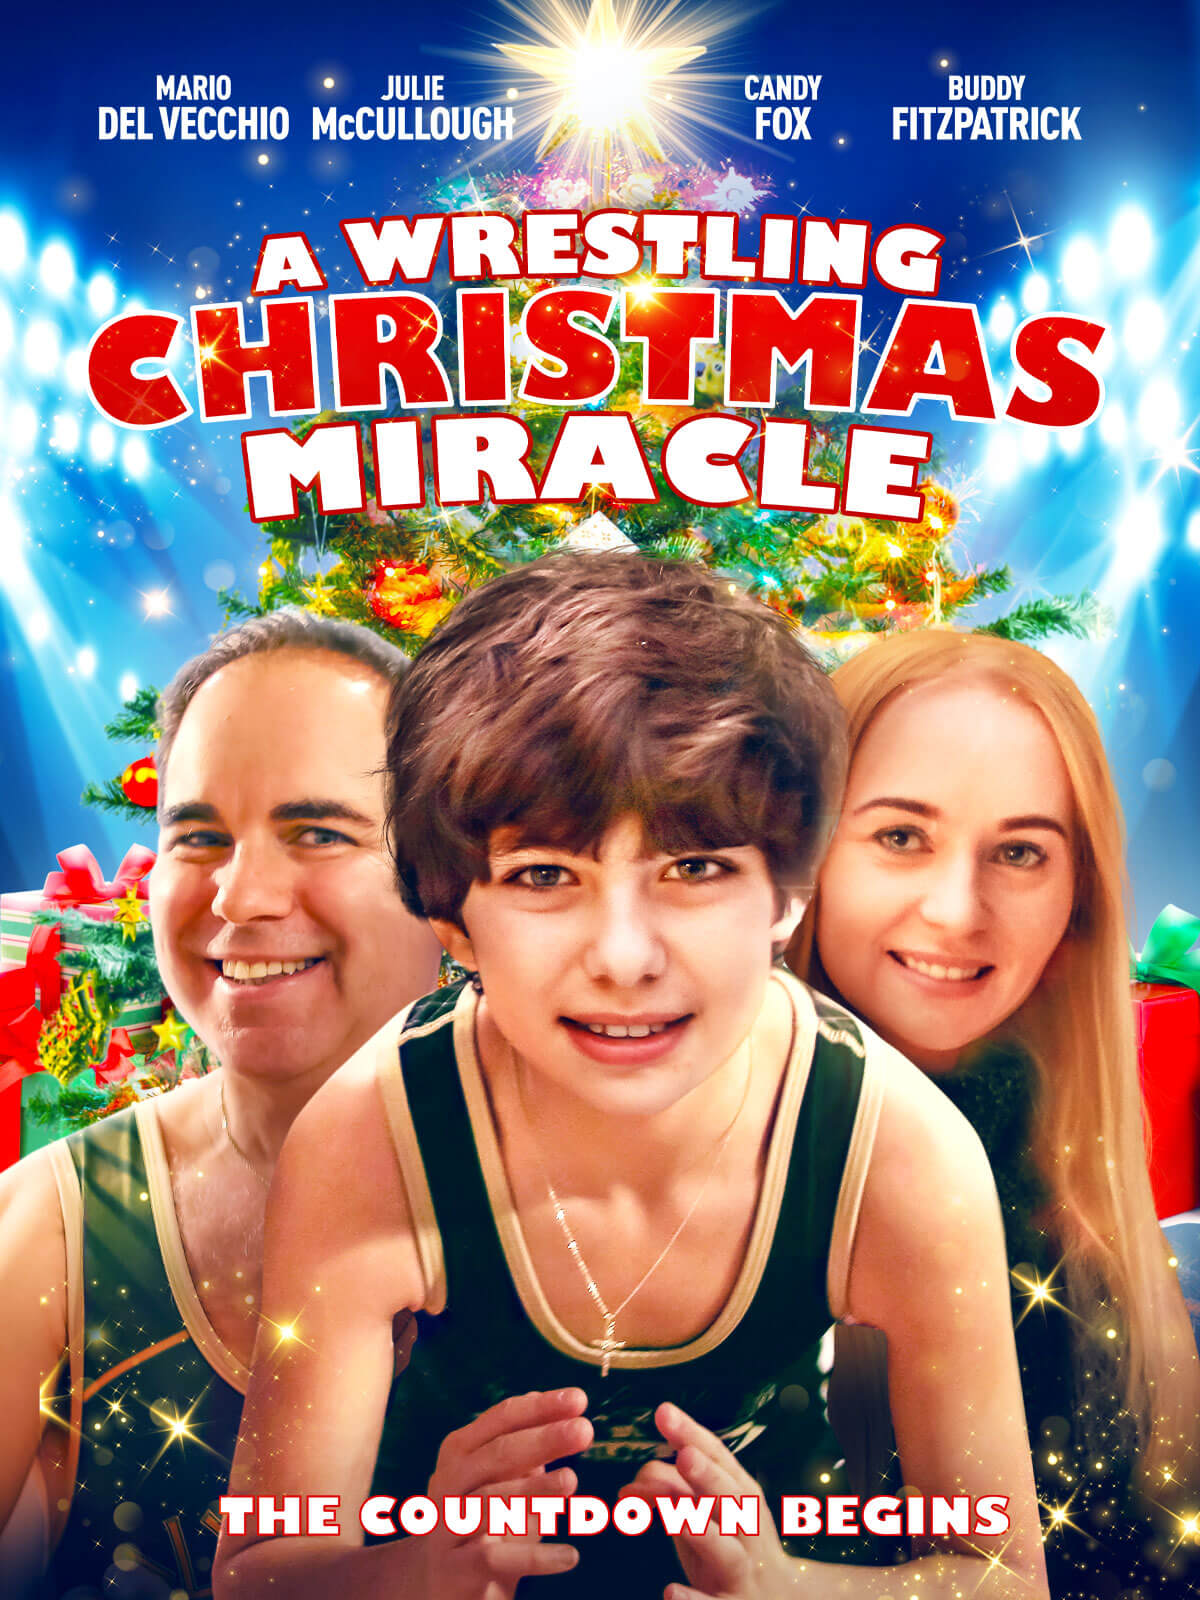 A Wrestling Christmas Miracle 1200x1600 1 A WRESTLING CHRISTMAS MIRACLE